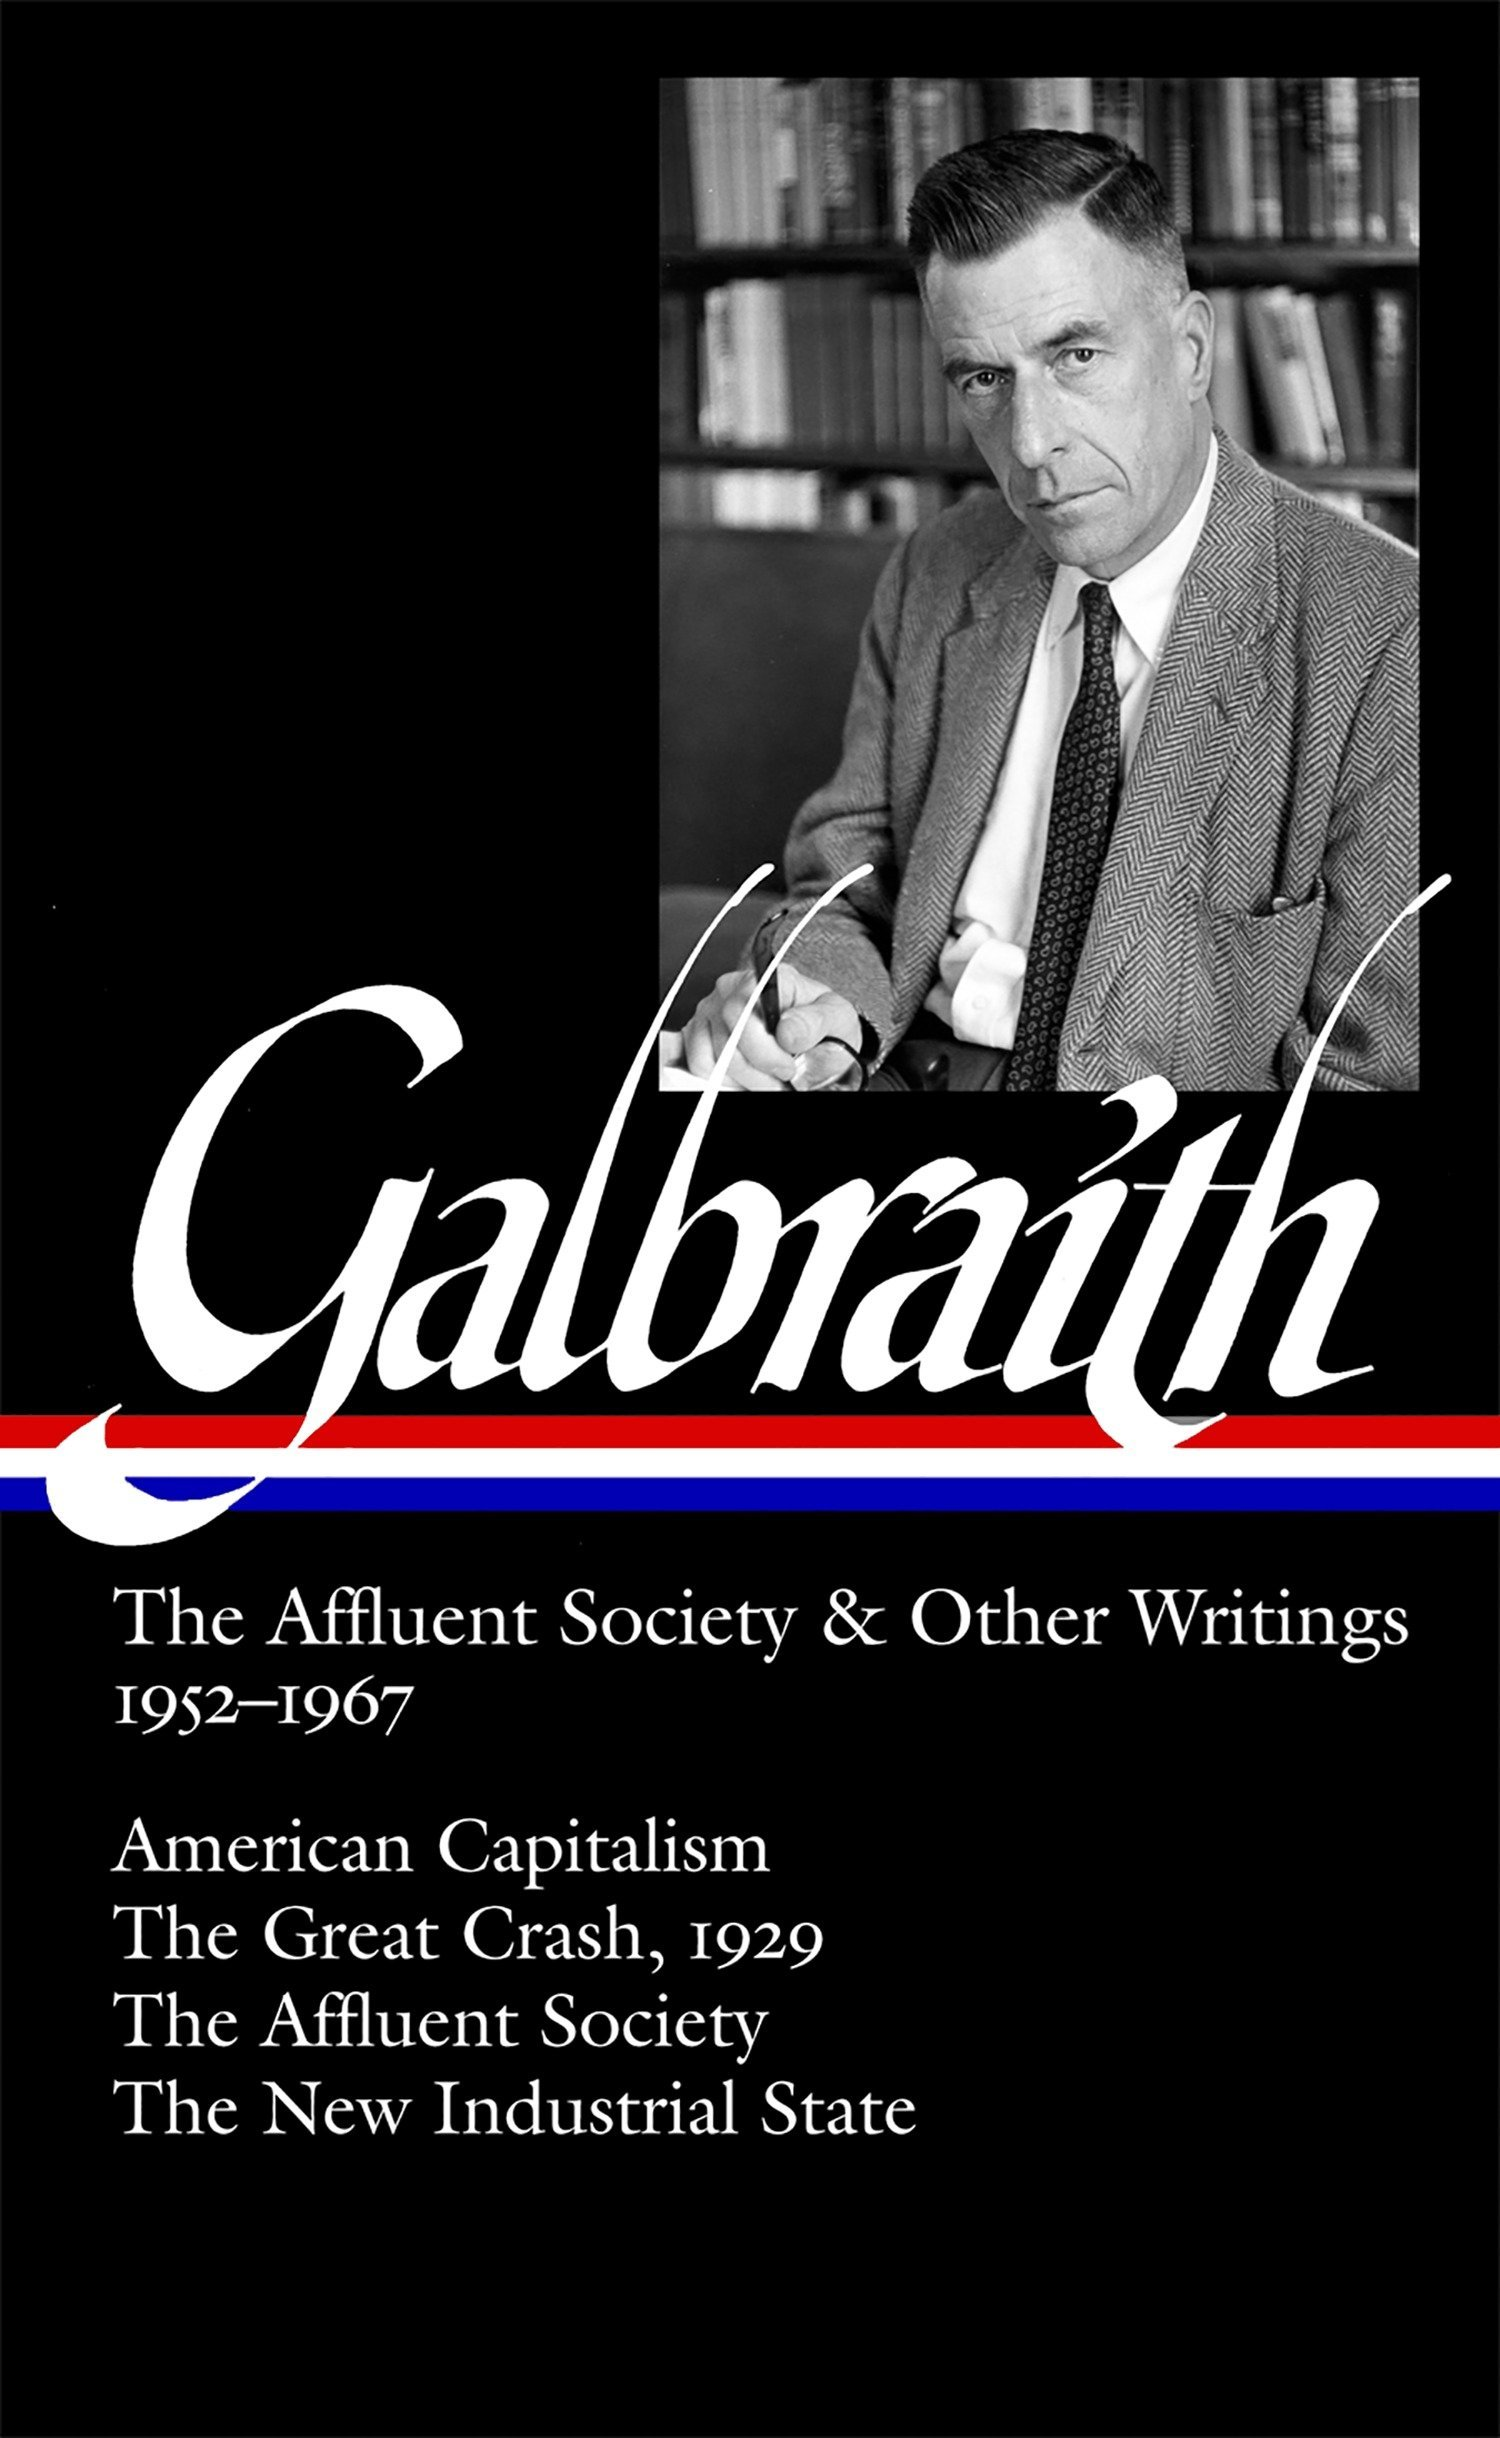 Download Galbraith: The Affluent Society  &  Other Writings, 1952-1967: American Capitalism / The Great Crash, 1929 / The Affluent Society / The New Industrial State PDF